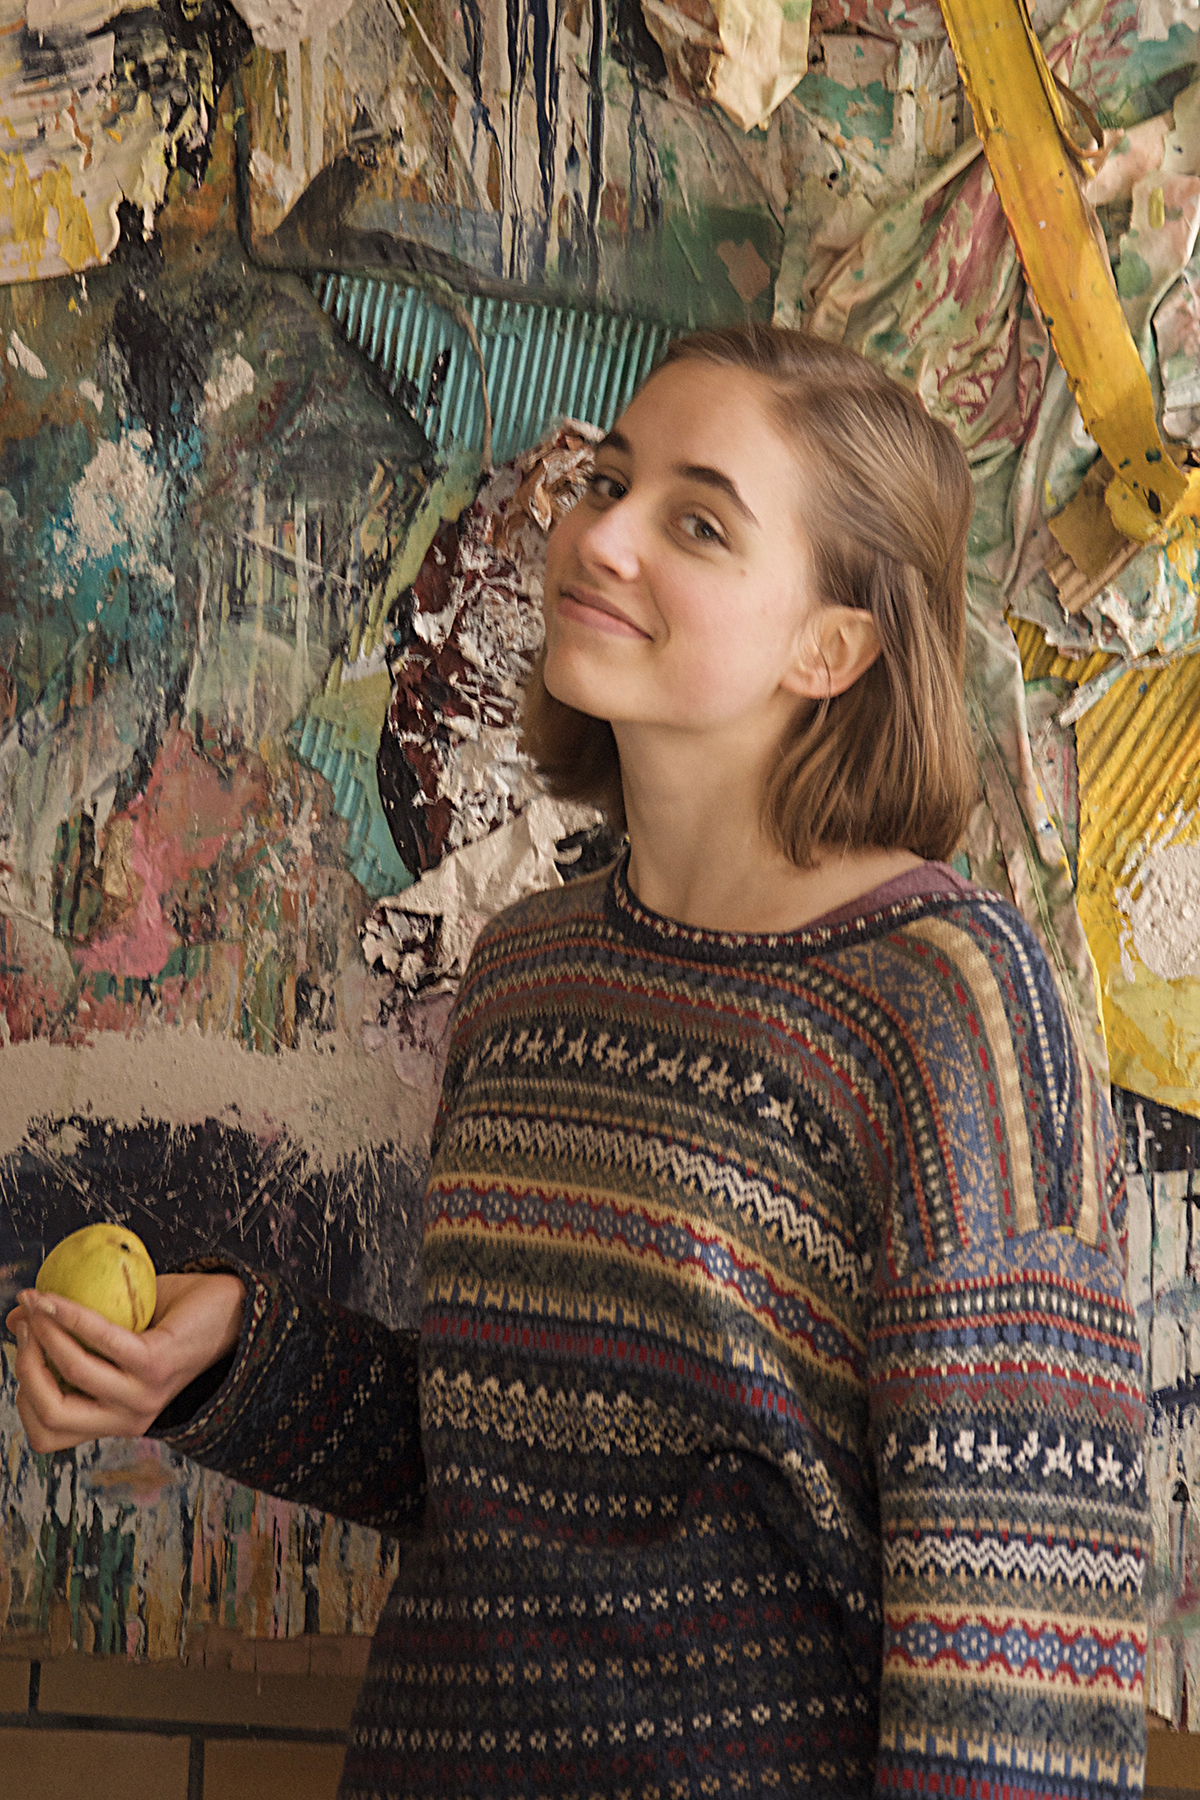 """MARY-DRYDEN MAIO """"I shop almost exclusively at thrift stores because I don't like the treatment of laborers in the textile industry."""""""